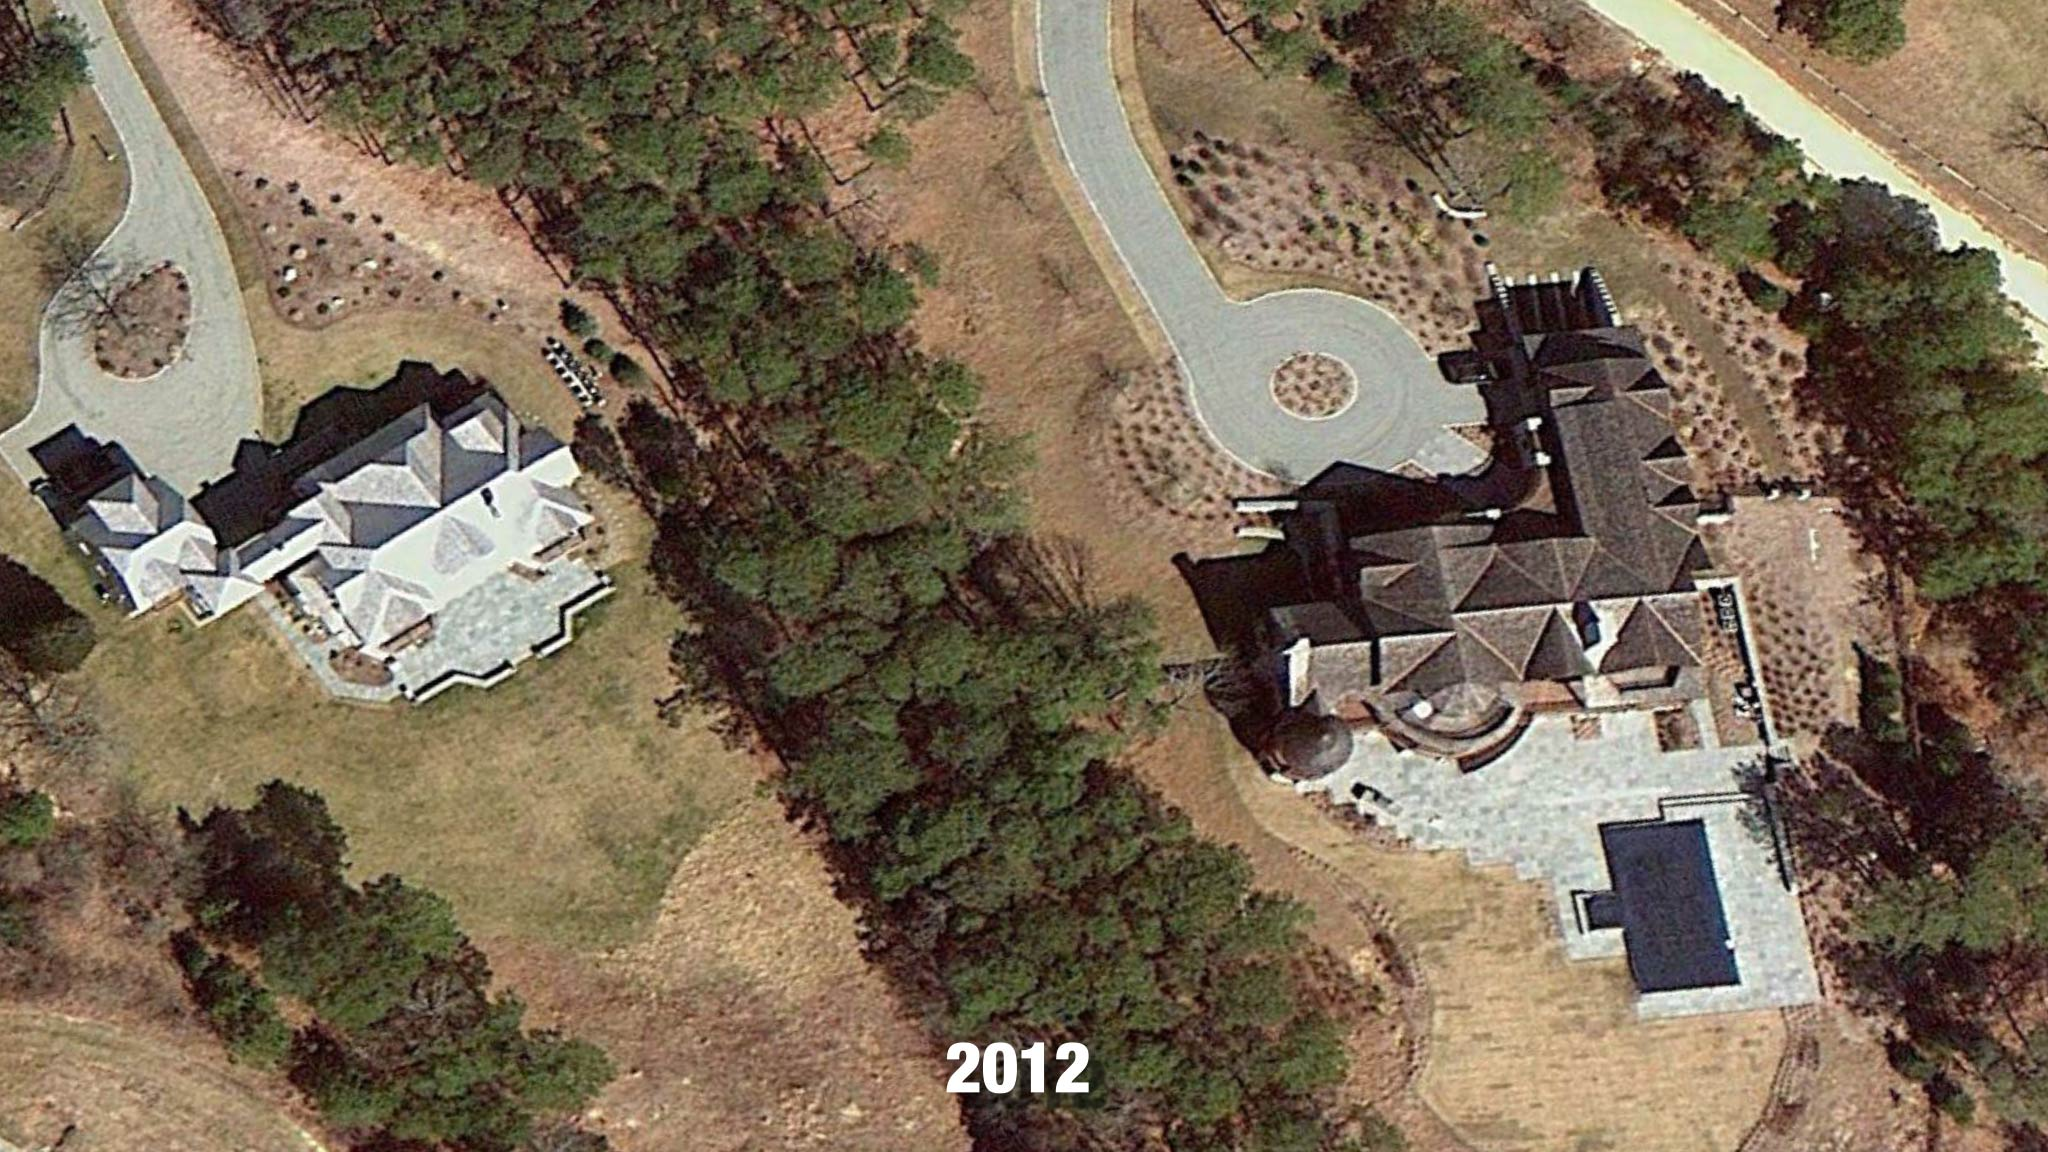 OBH_B&A_MV_Satellite_06_After_Year--Credit_Google_Earth.jpg